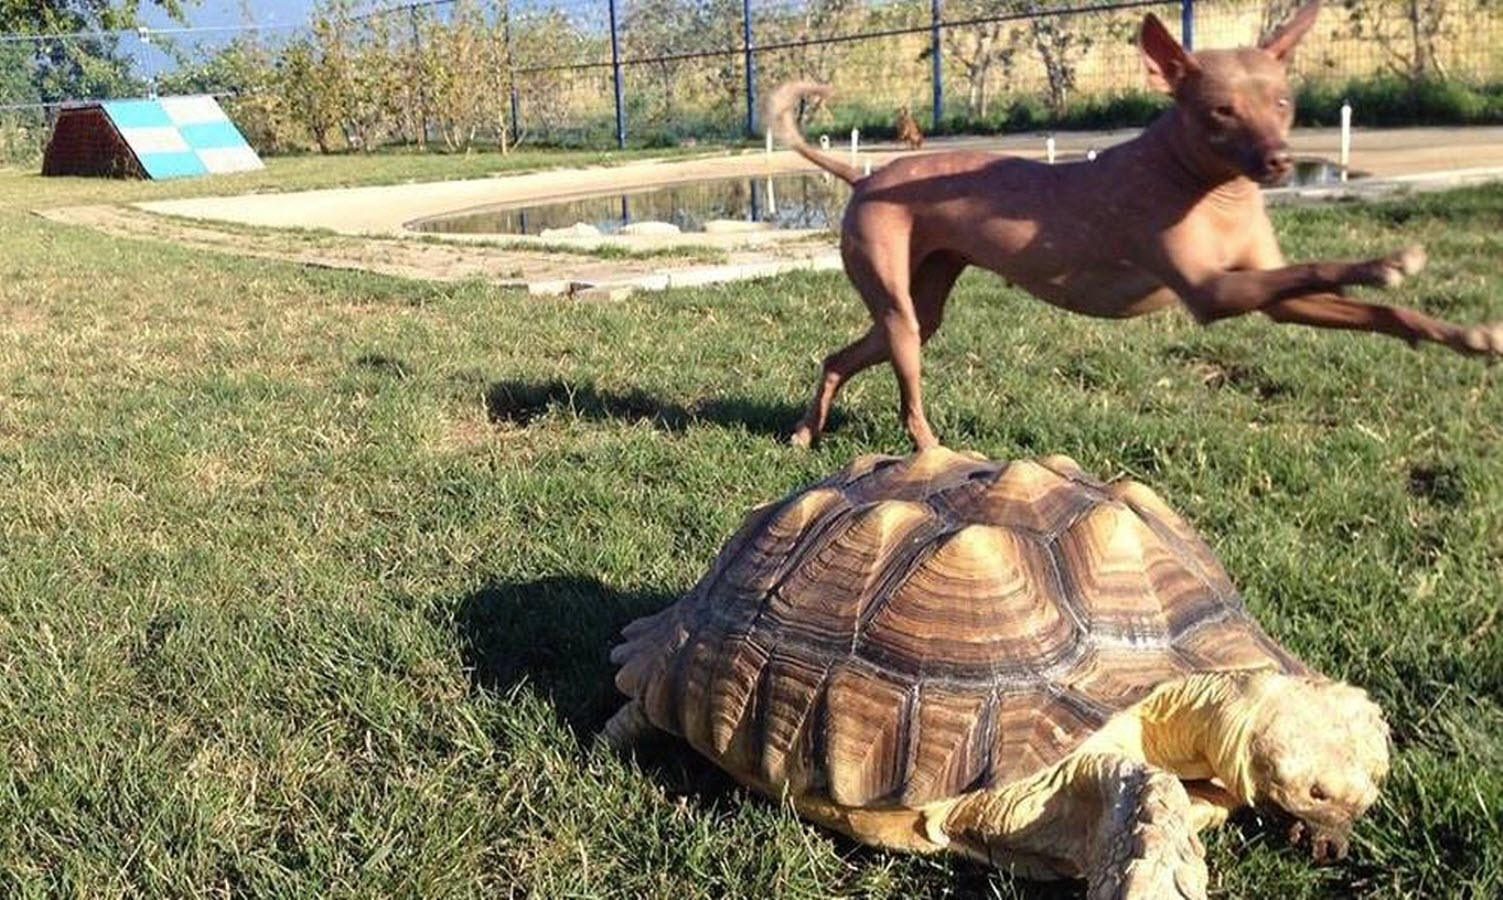 The Tortoise & The Hairless Pet Services